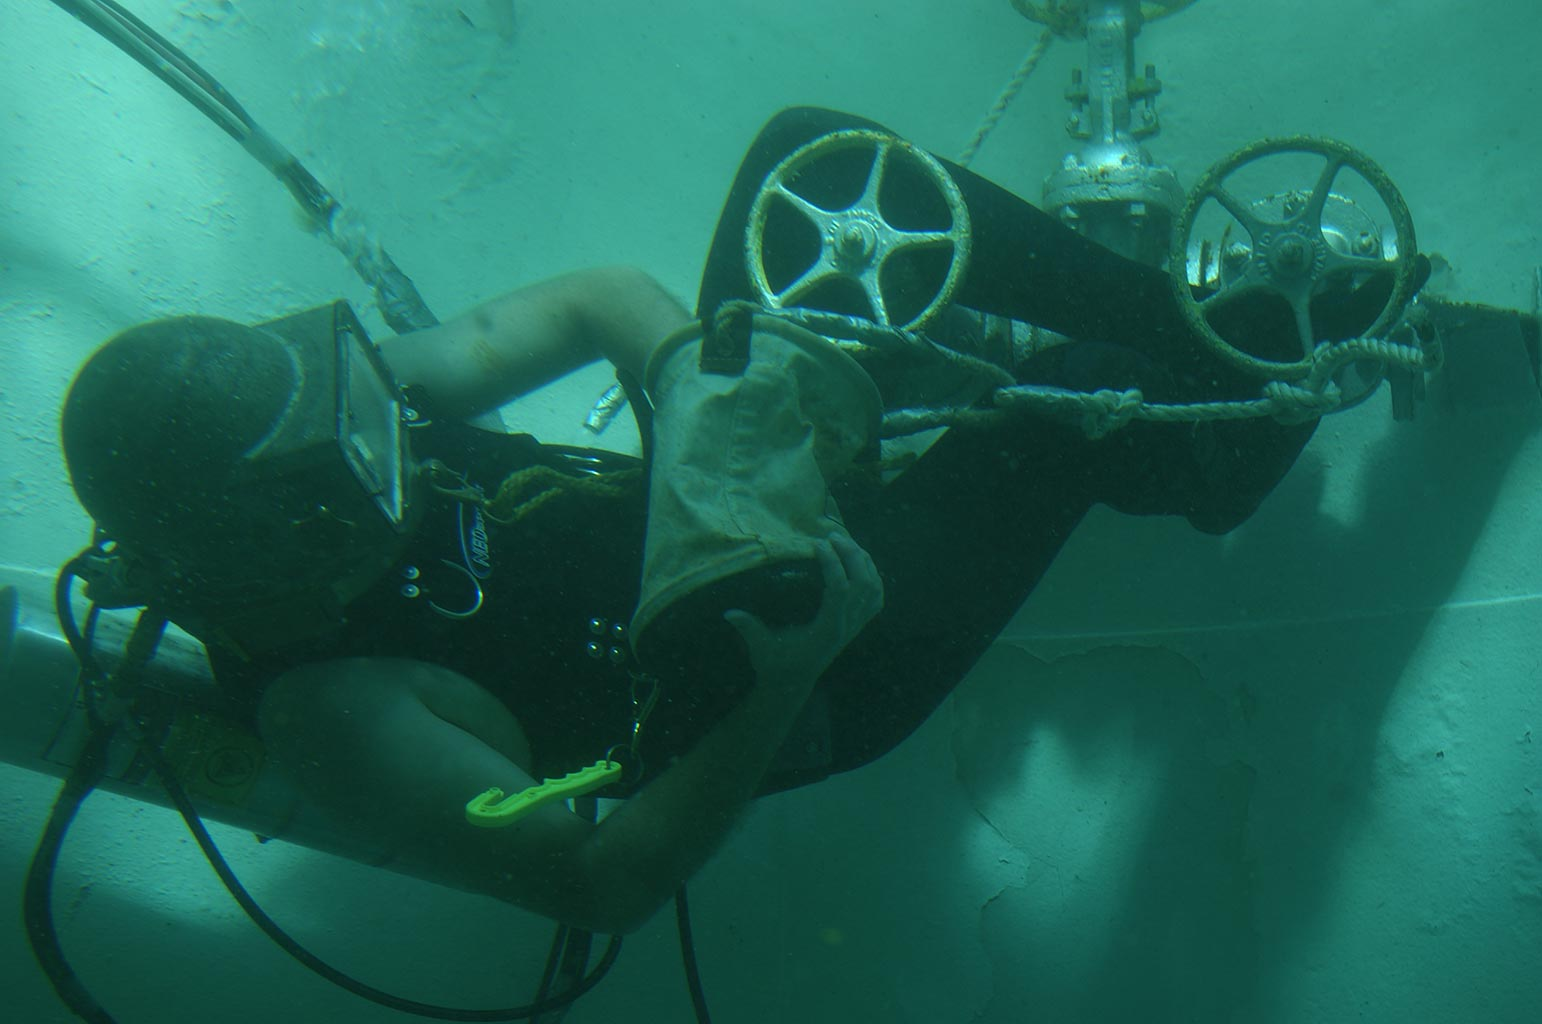 Underwater Welding Training at CDA Technical Institute